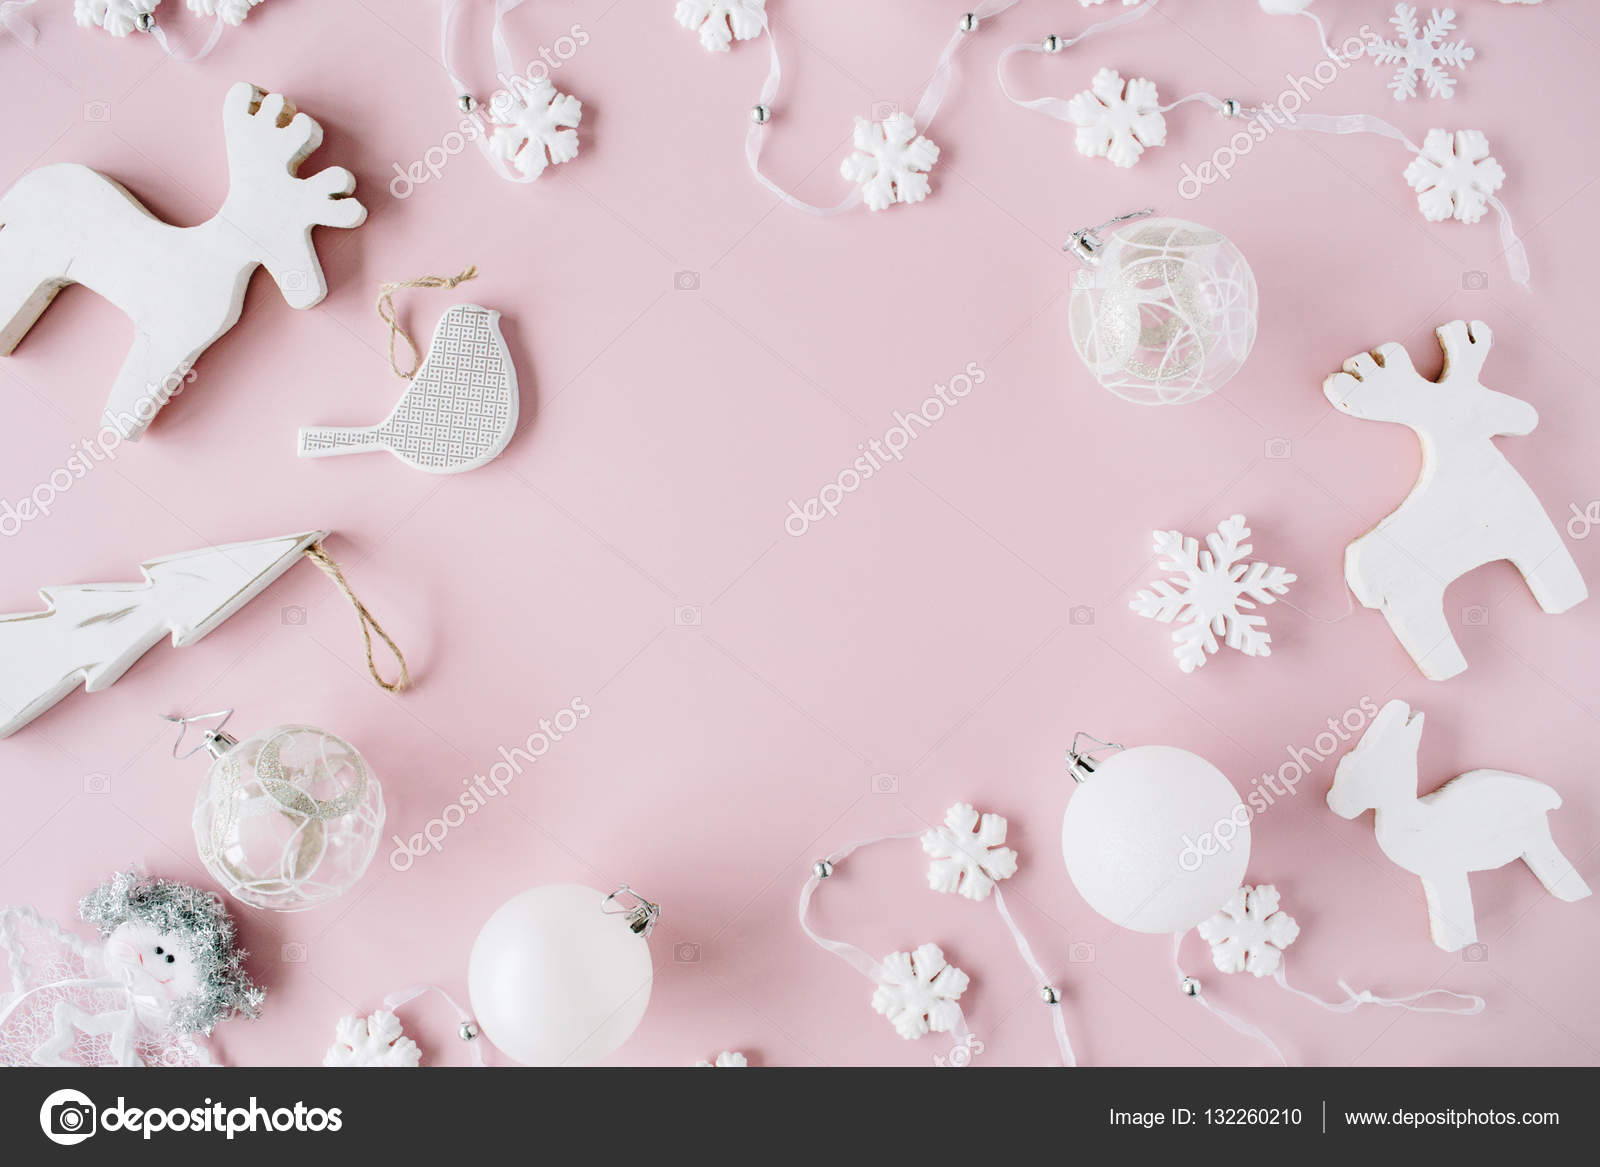 Trendy Creatiove Christmas Or New Year Composition Stock